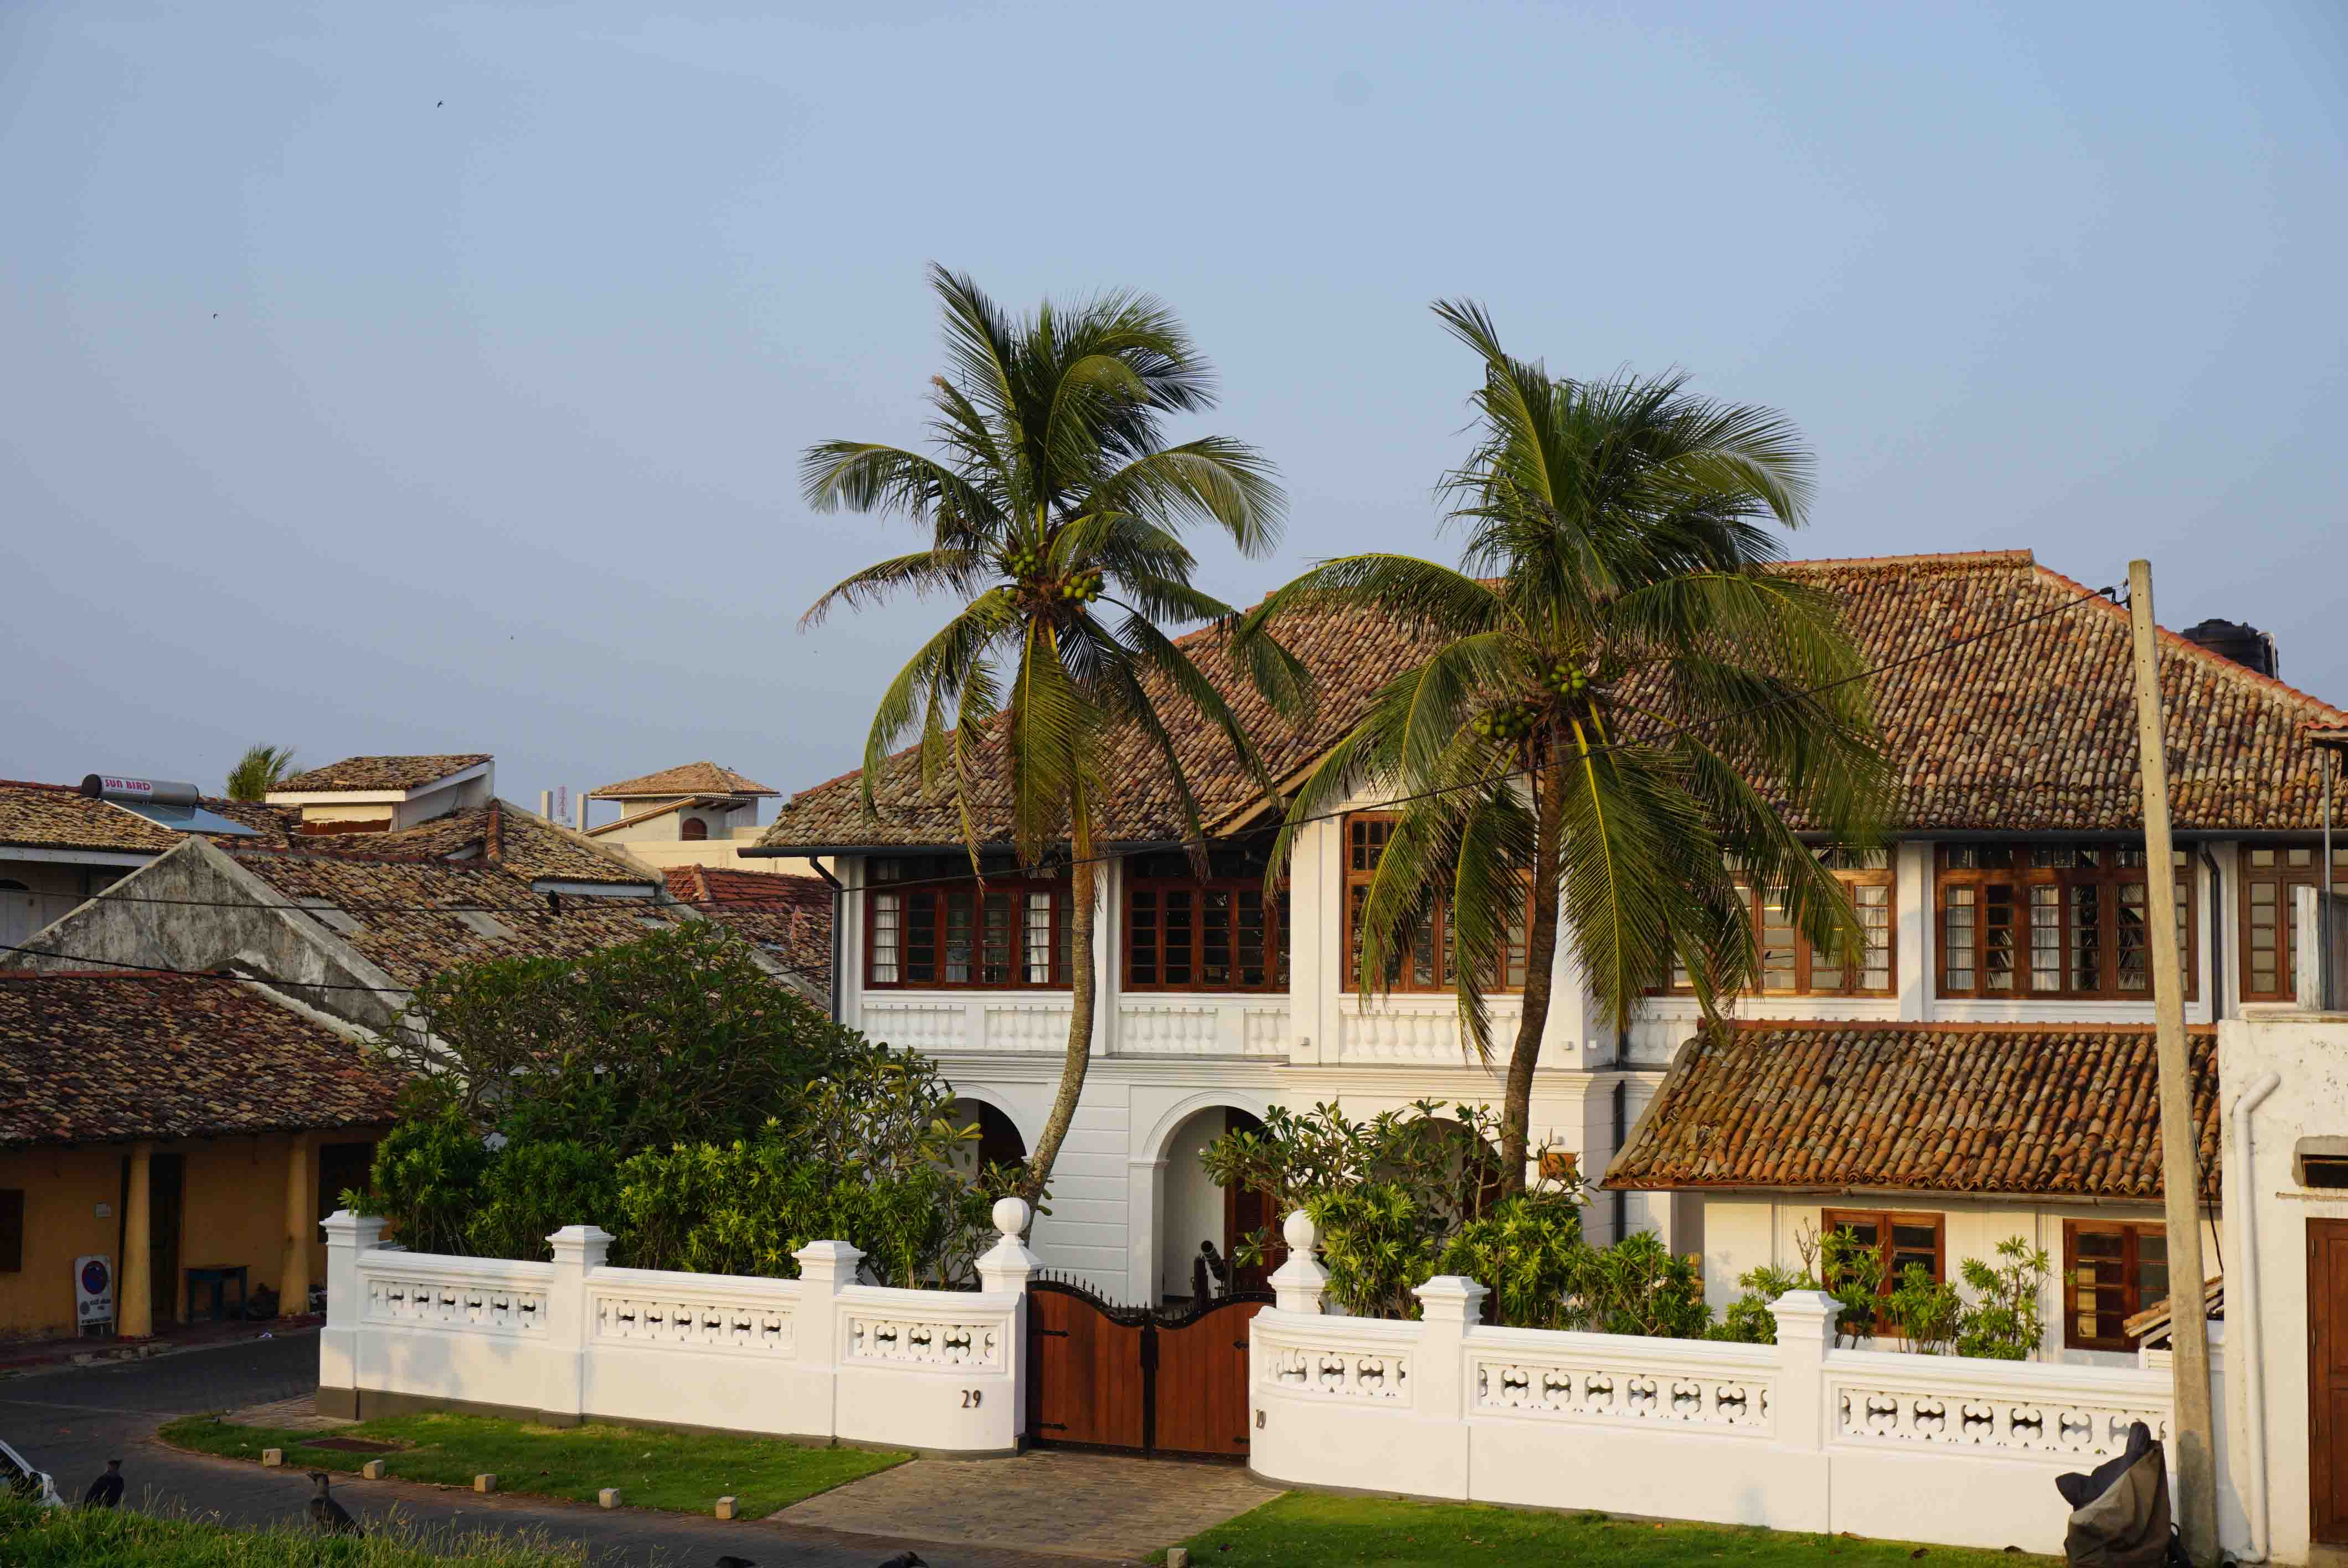 Sri Lanka Adventure Ep 7, the final stop in the Dutch colonial town, Galle!